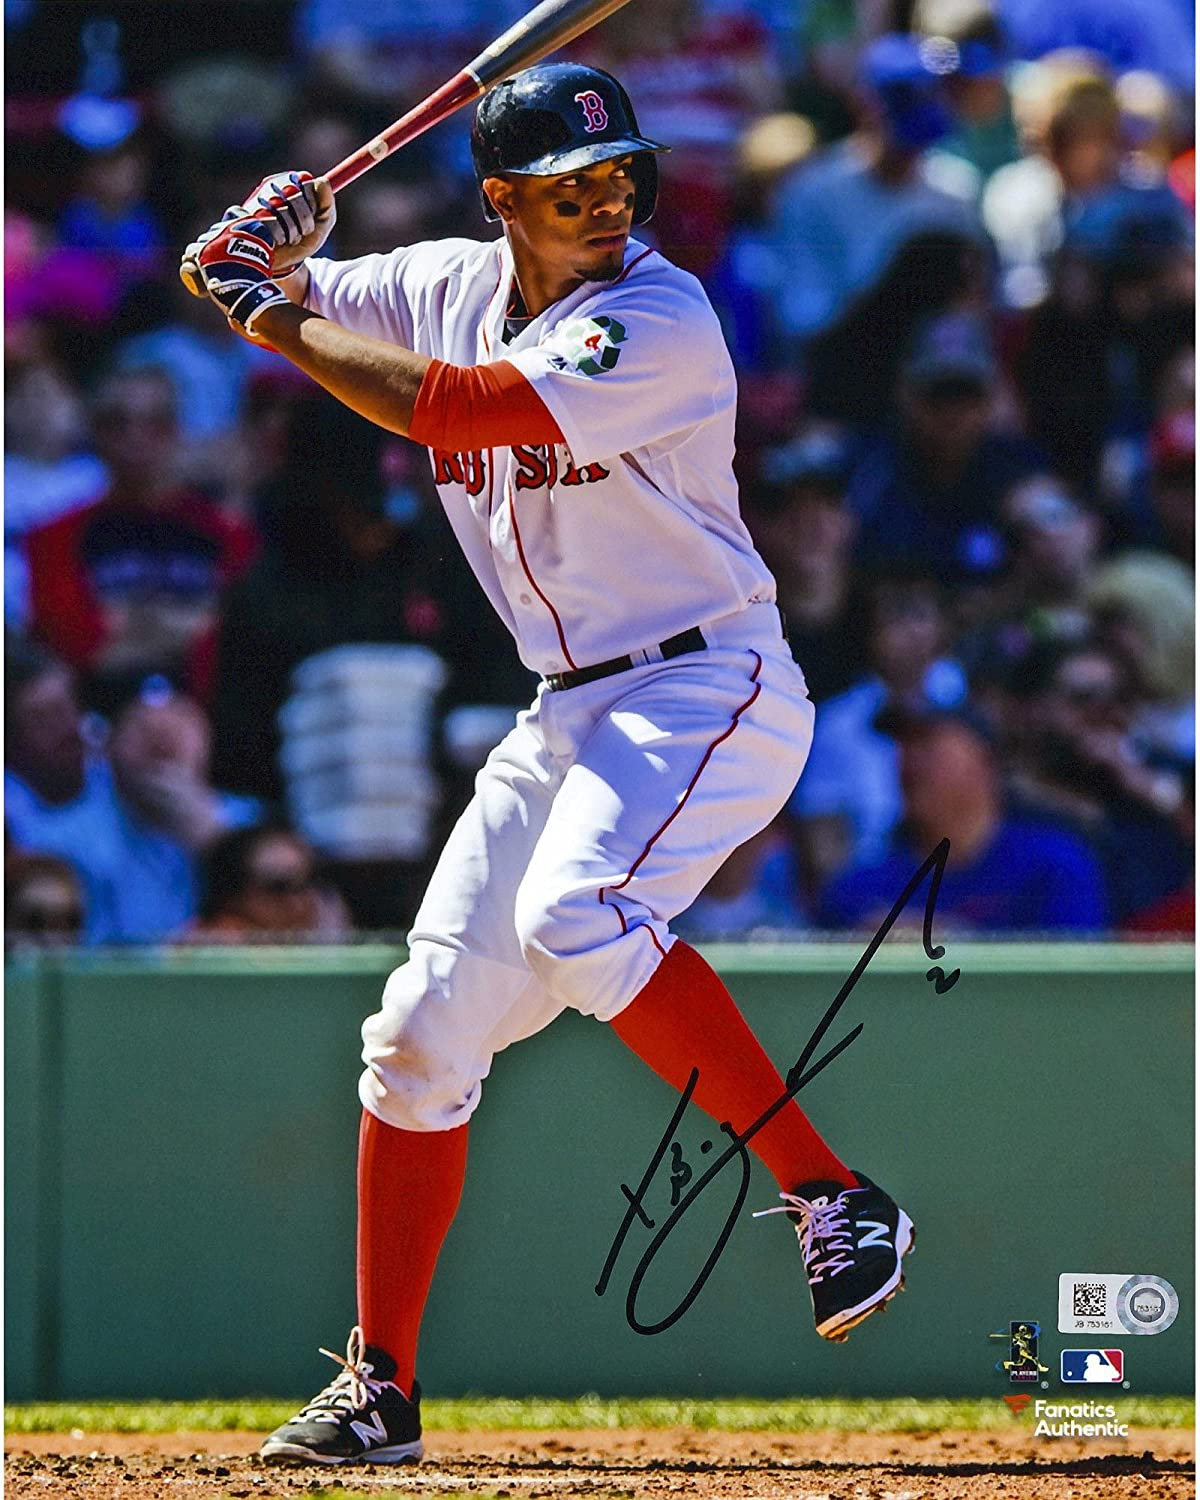 Xander Bogaerts Boston Red Sox Autographed 8' x 10' Vertical Hitting Photograph - Fanatics Authentic Certified